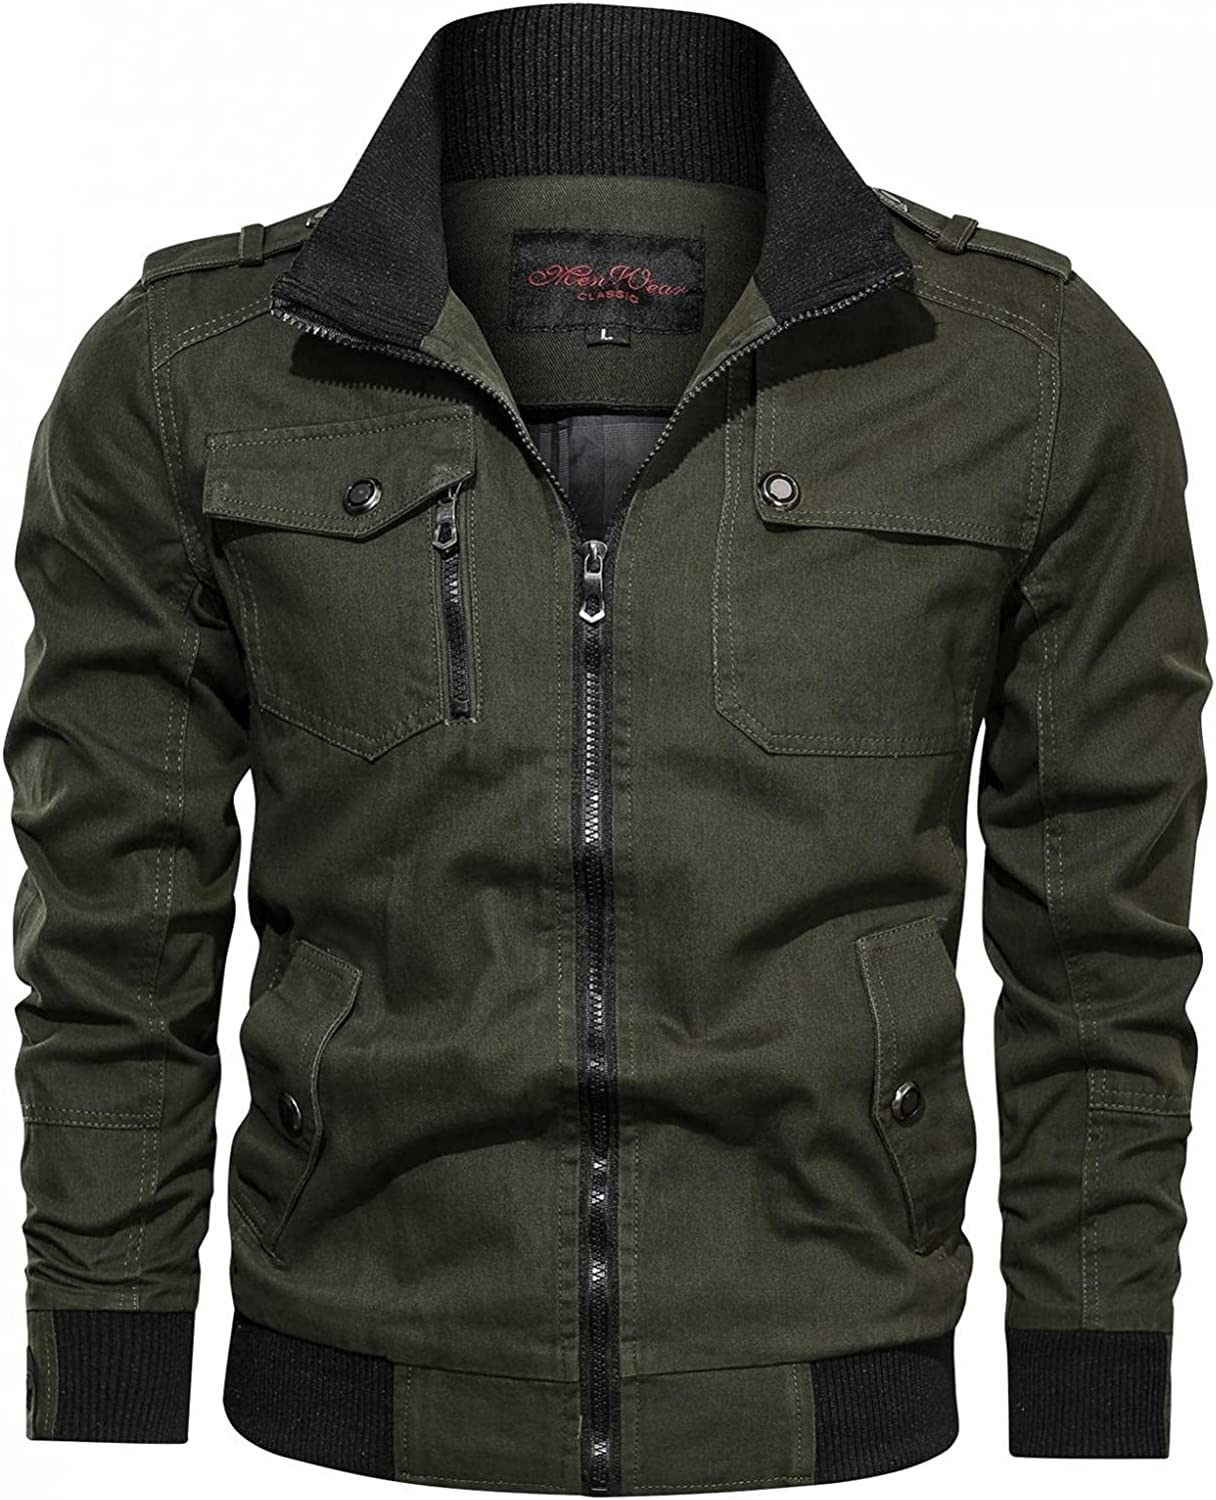 AKIMPE 55% OFF Men's Casual Plus Size Jackets Solid Military Cotton Low price Zipp